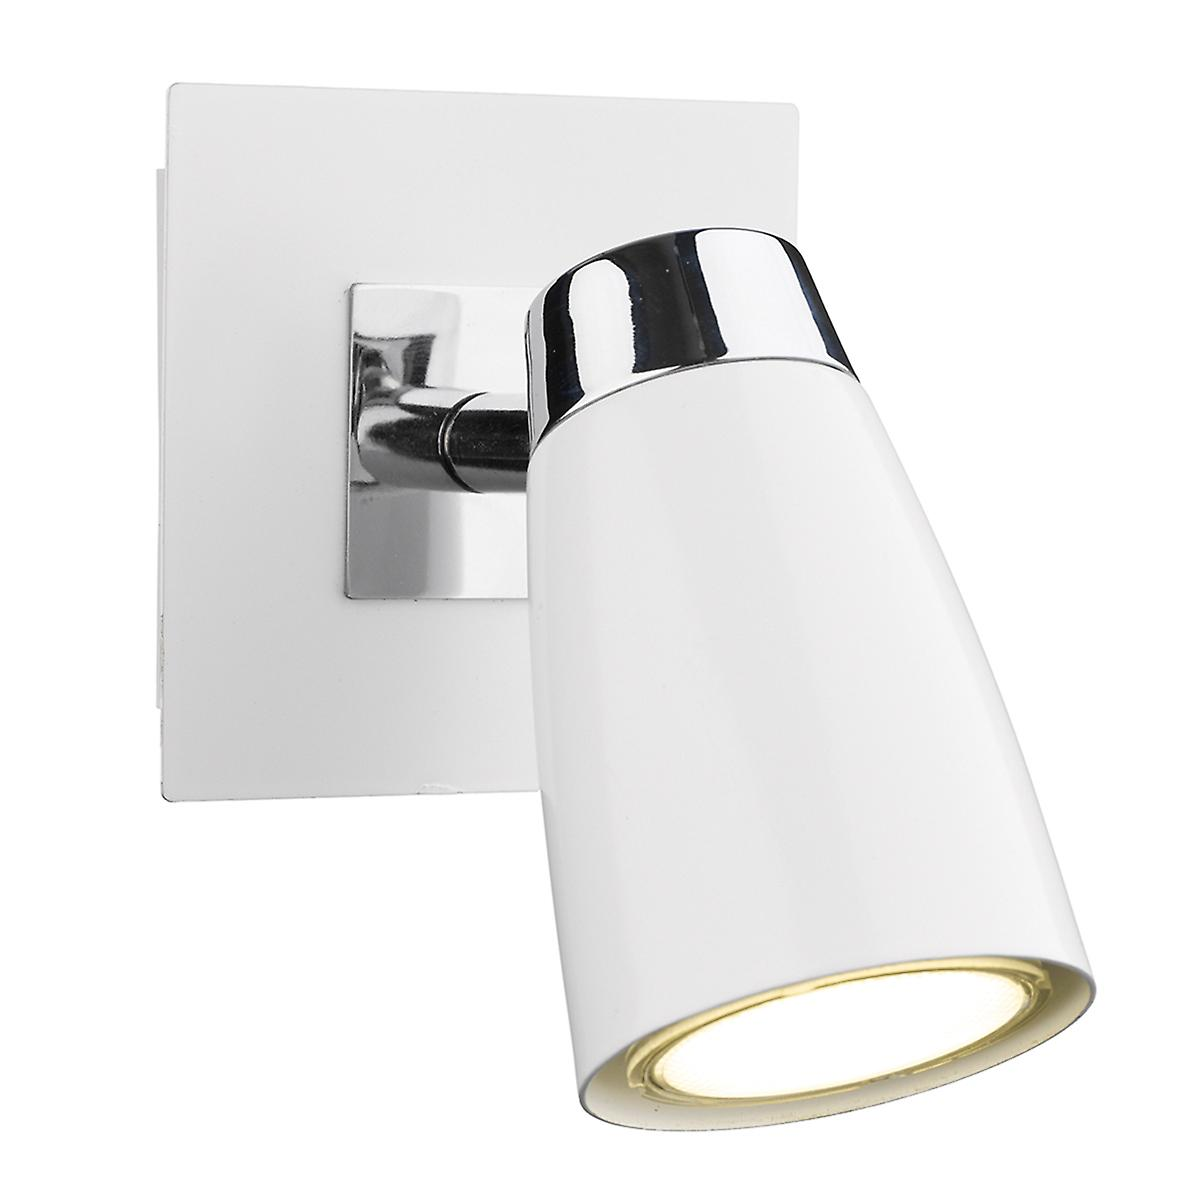 Dar LOF072 Loft Low Energy Switched Wall Spot Light - Double Insulated